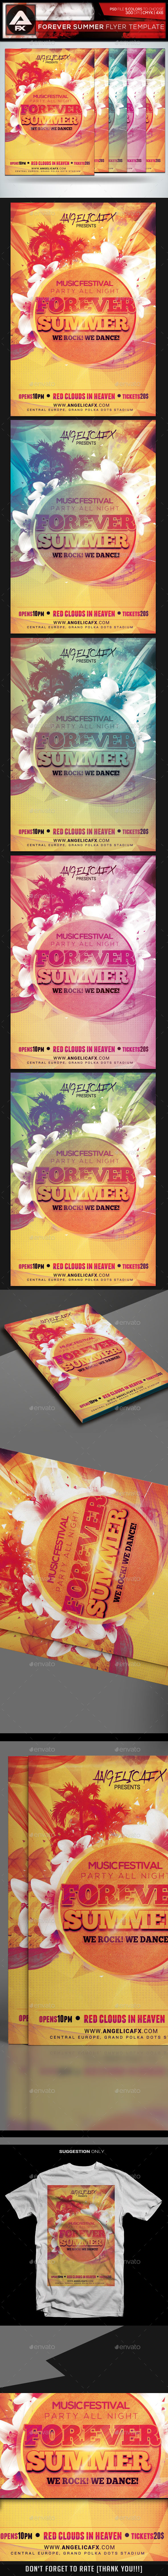 Forever Summer Flyer Template - Flyers Print Templates